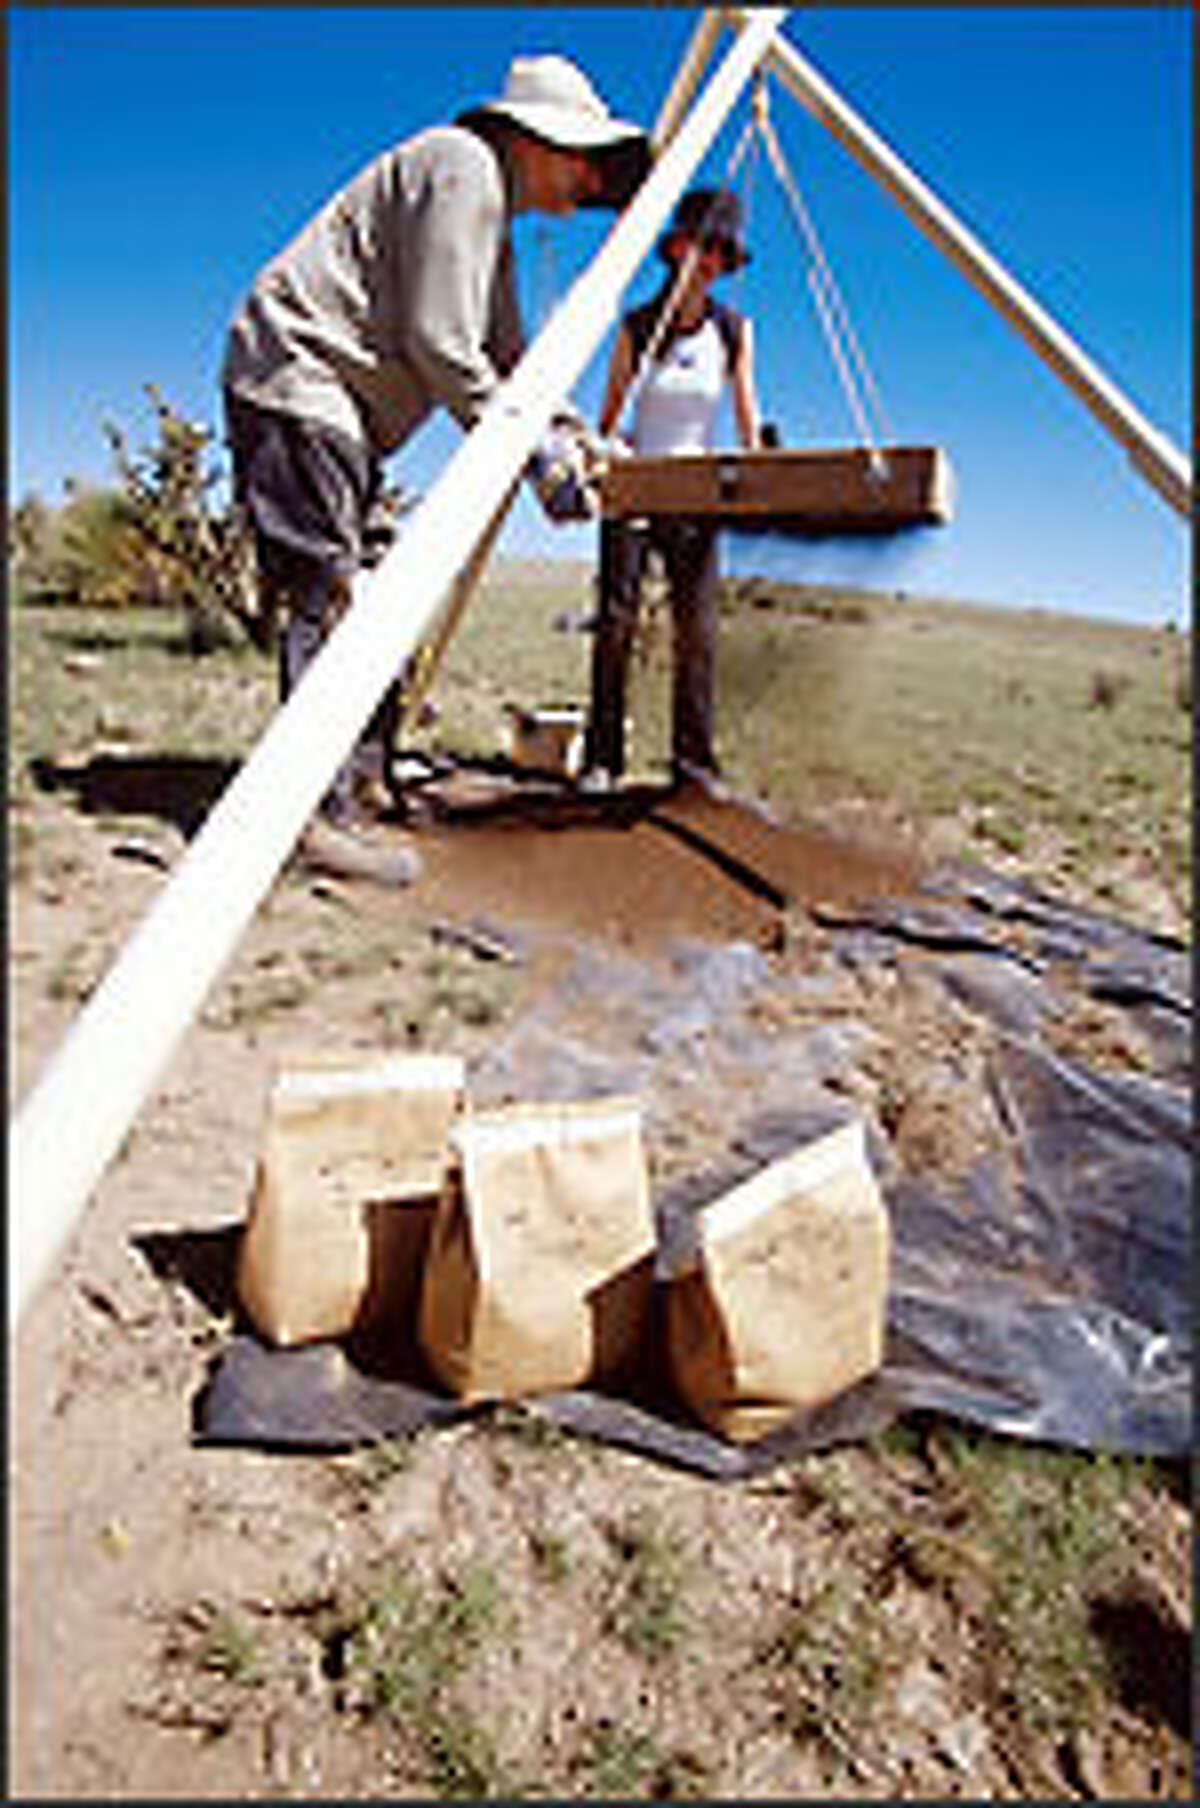 Bags of materials excavated from the supposed site of a UFO crash in Roswell, N.M., will be kept in a bank vault until they can be extensively examined in a lab.